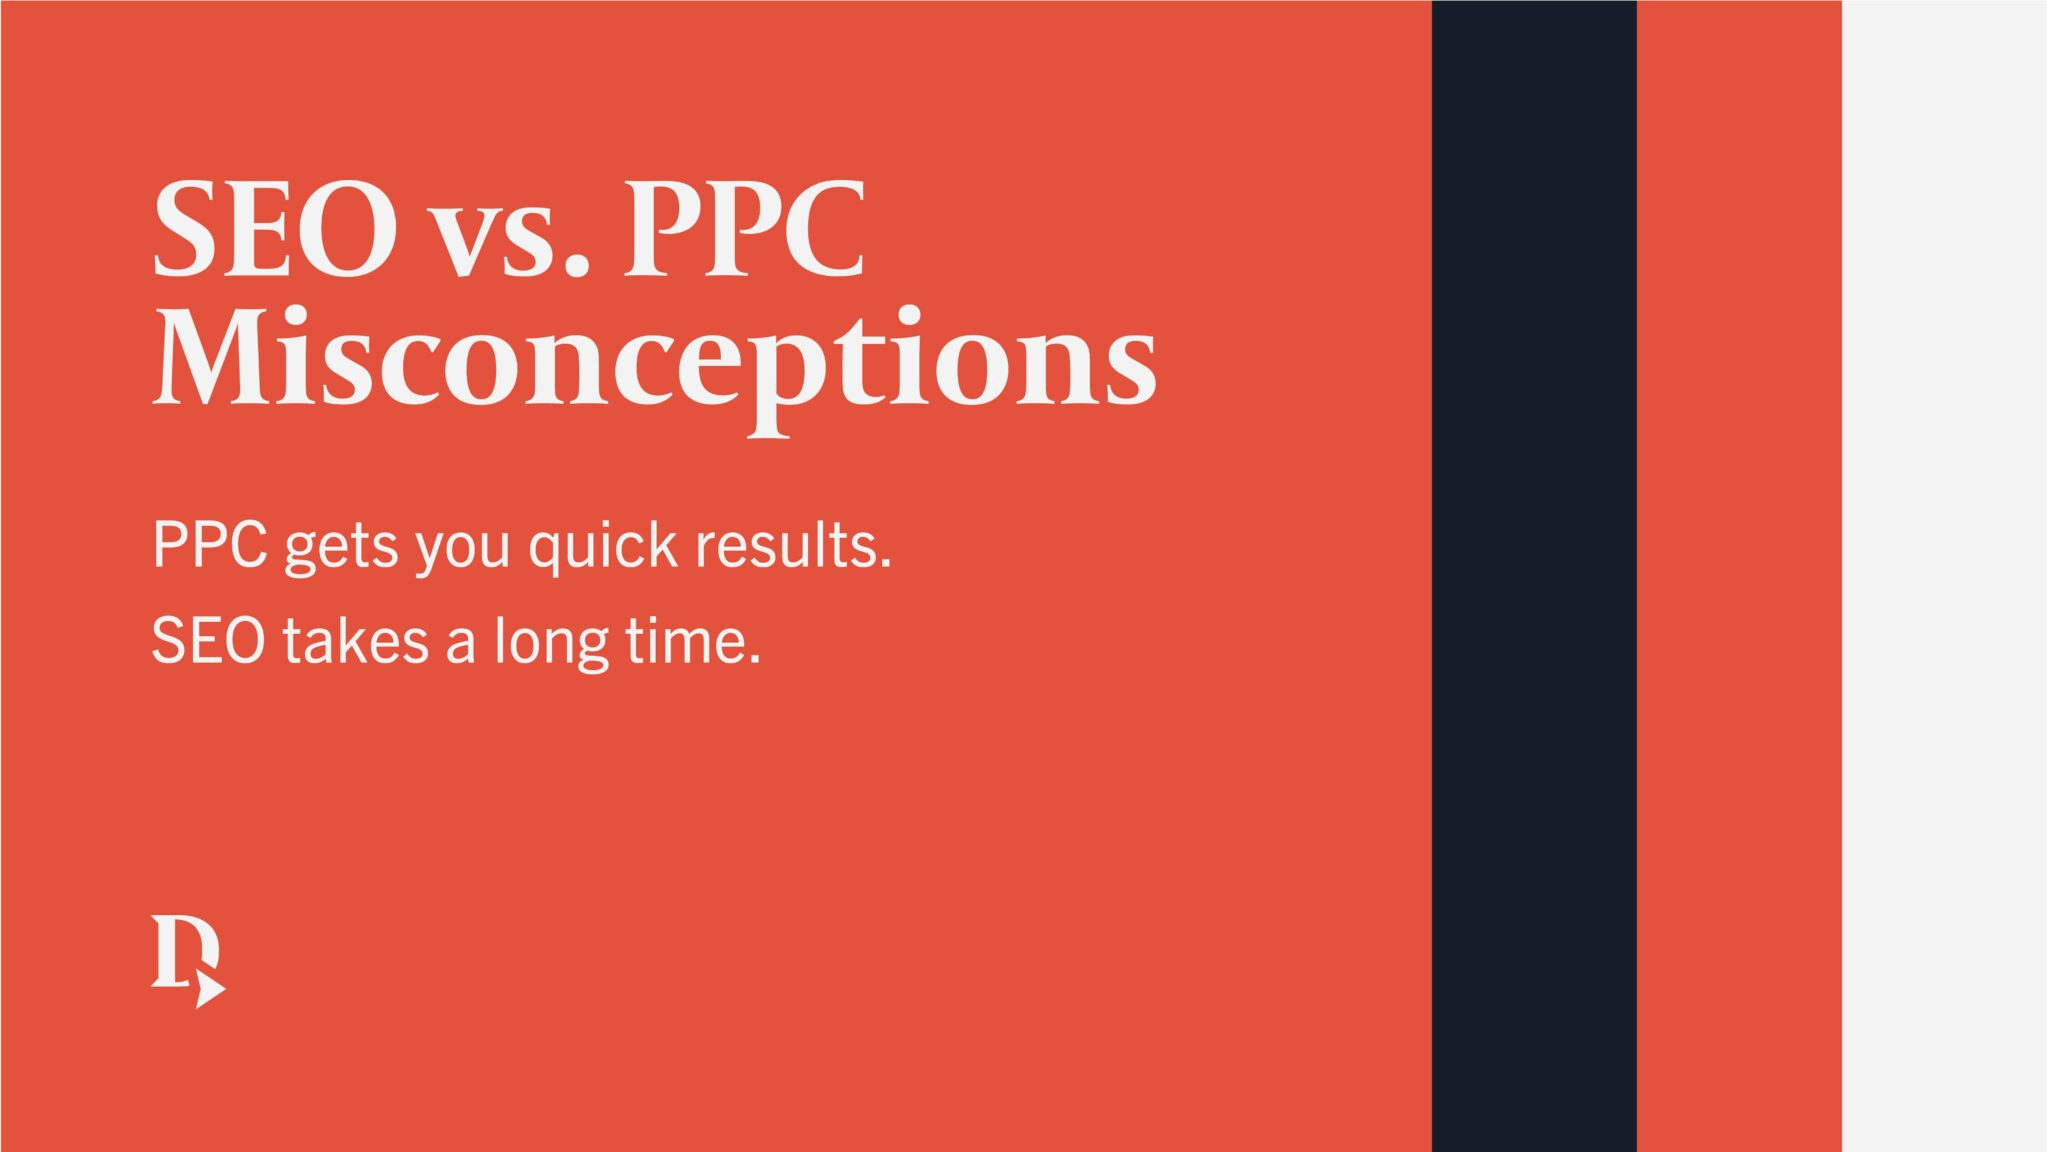 Graphic text showing SEO vs PPC misconception number one.